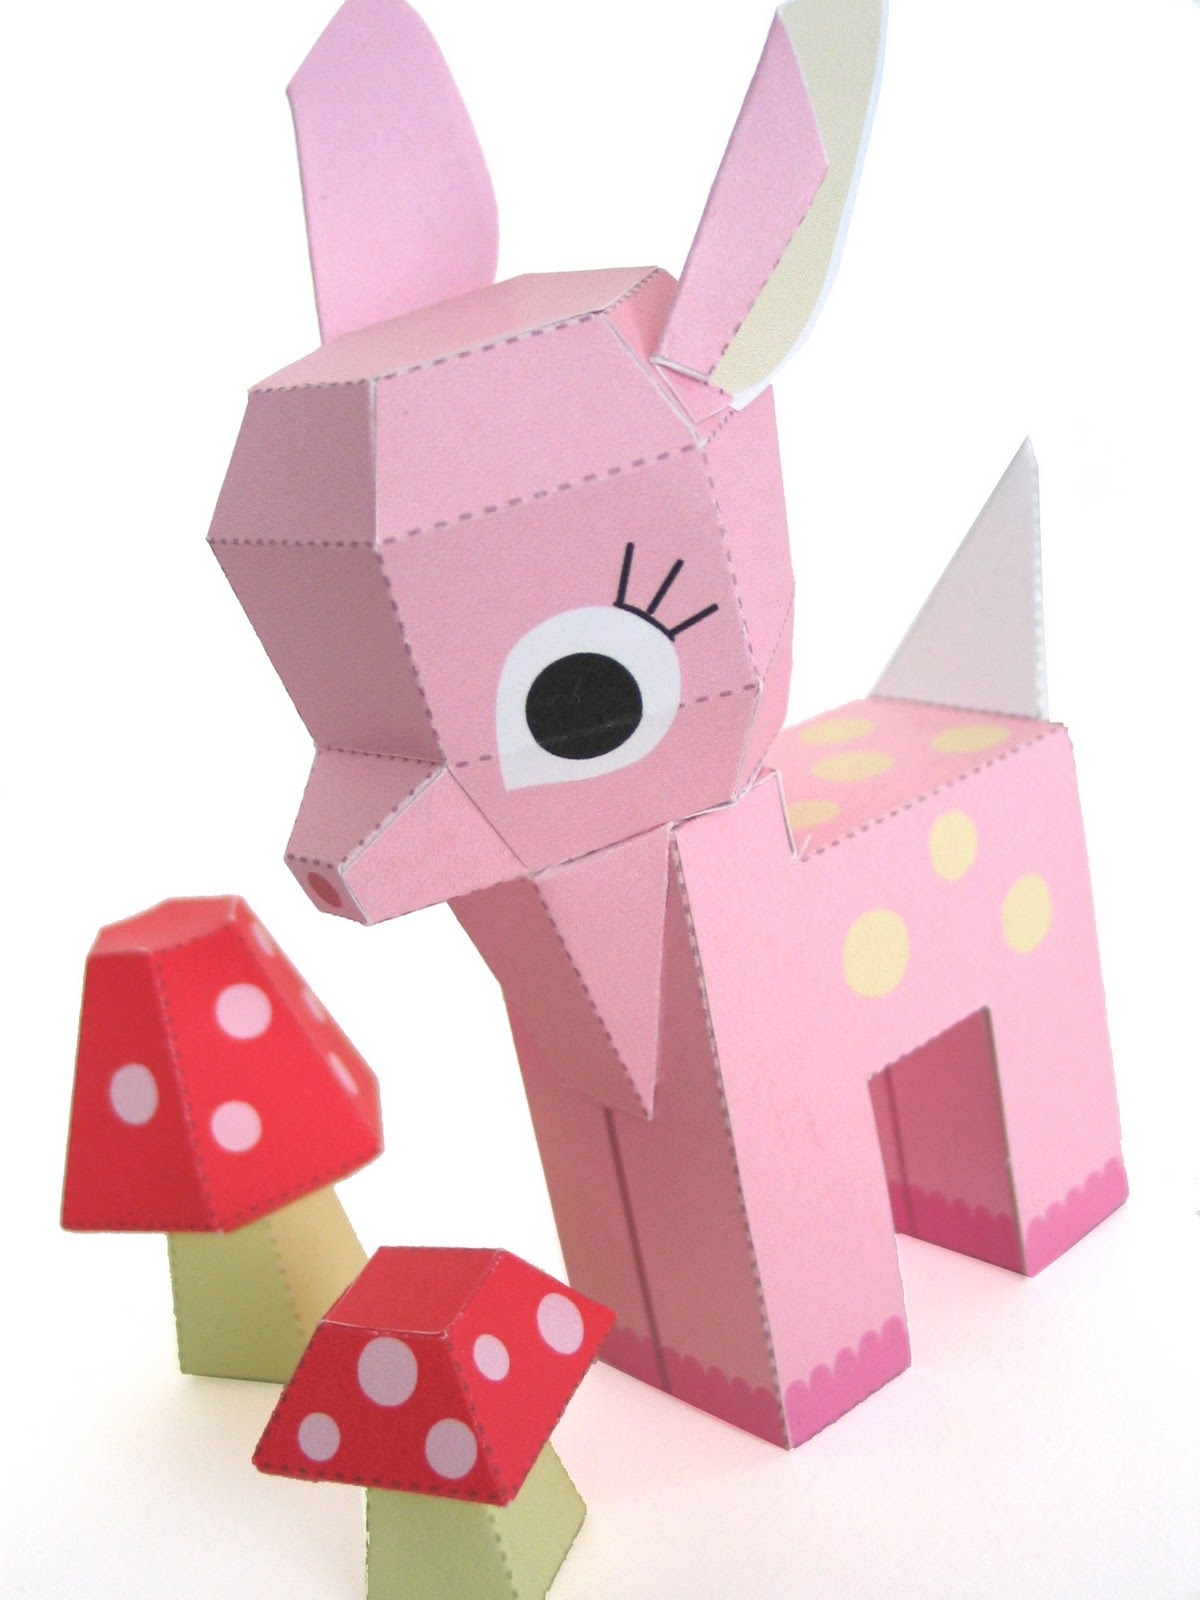 This is a picture of Lively Printable Paper Crafts